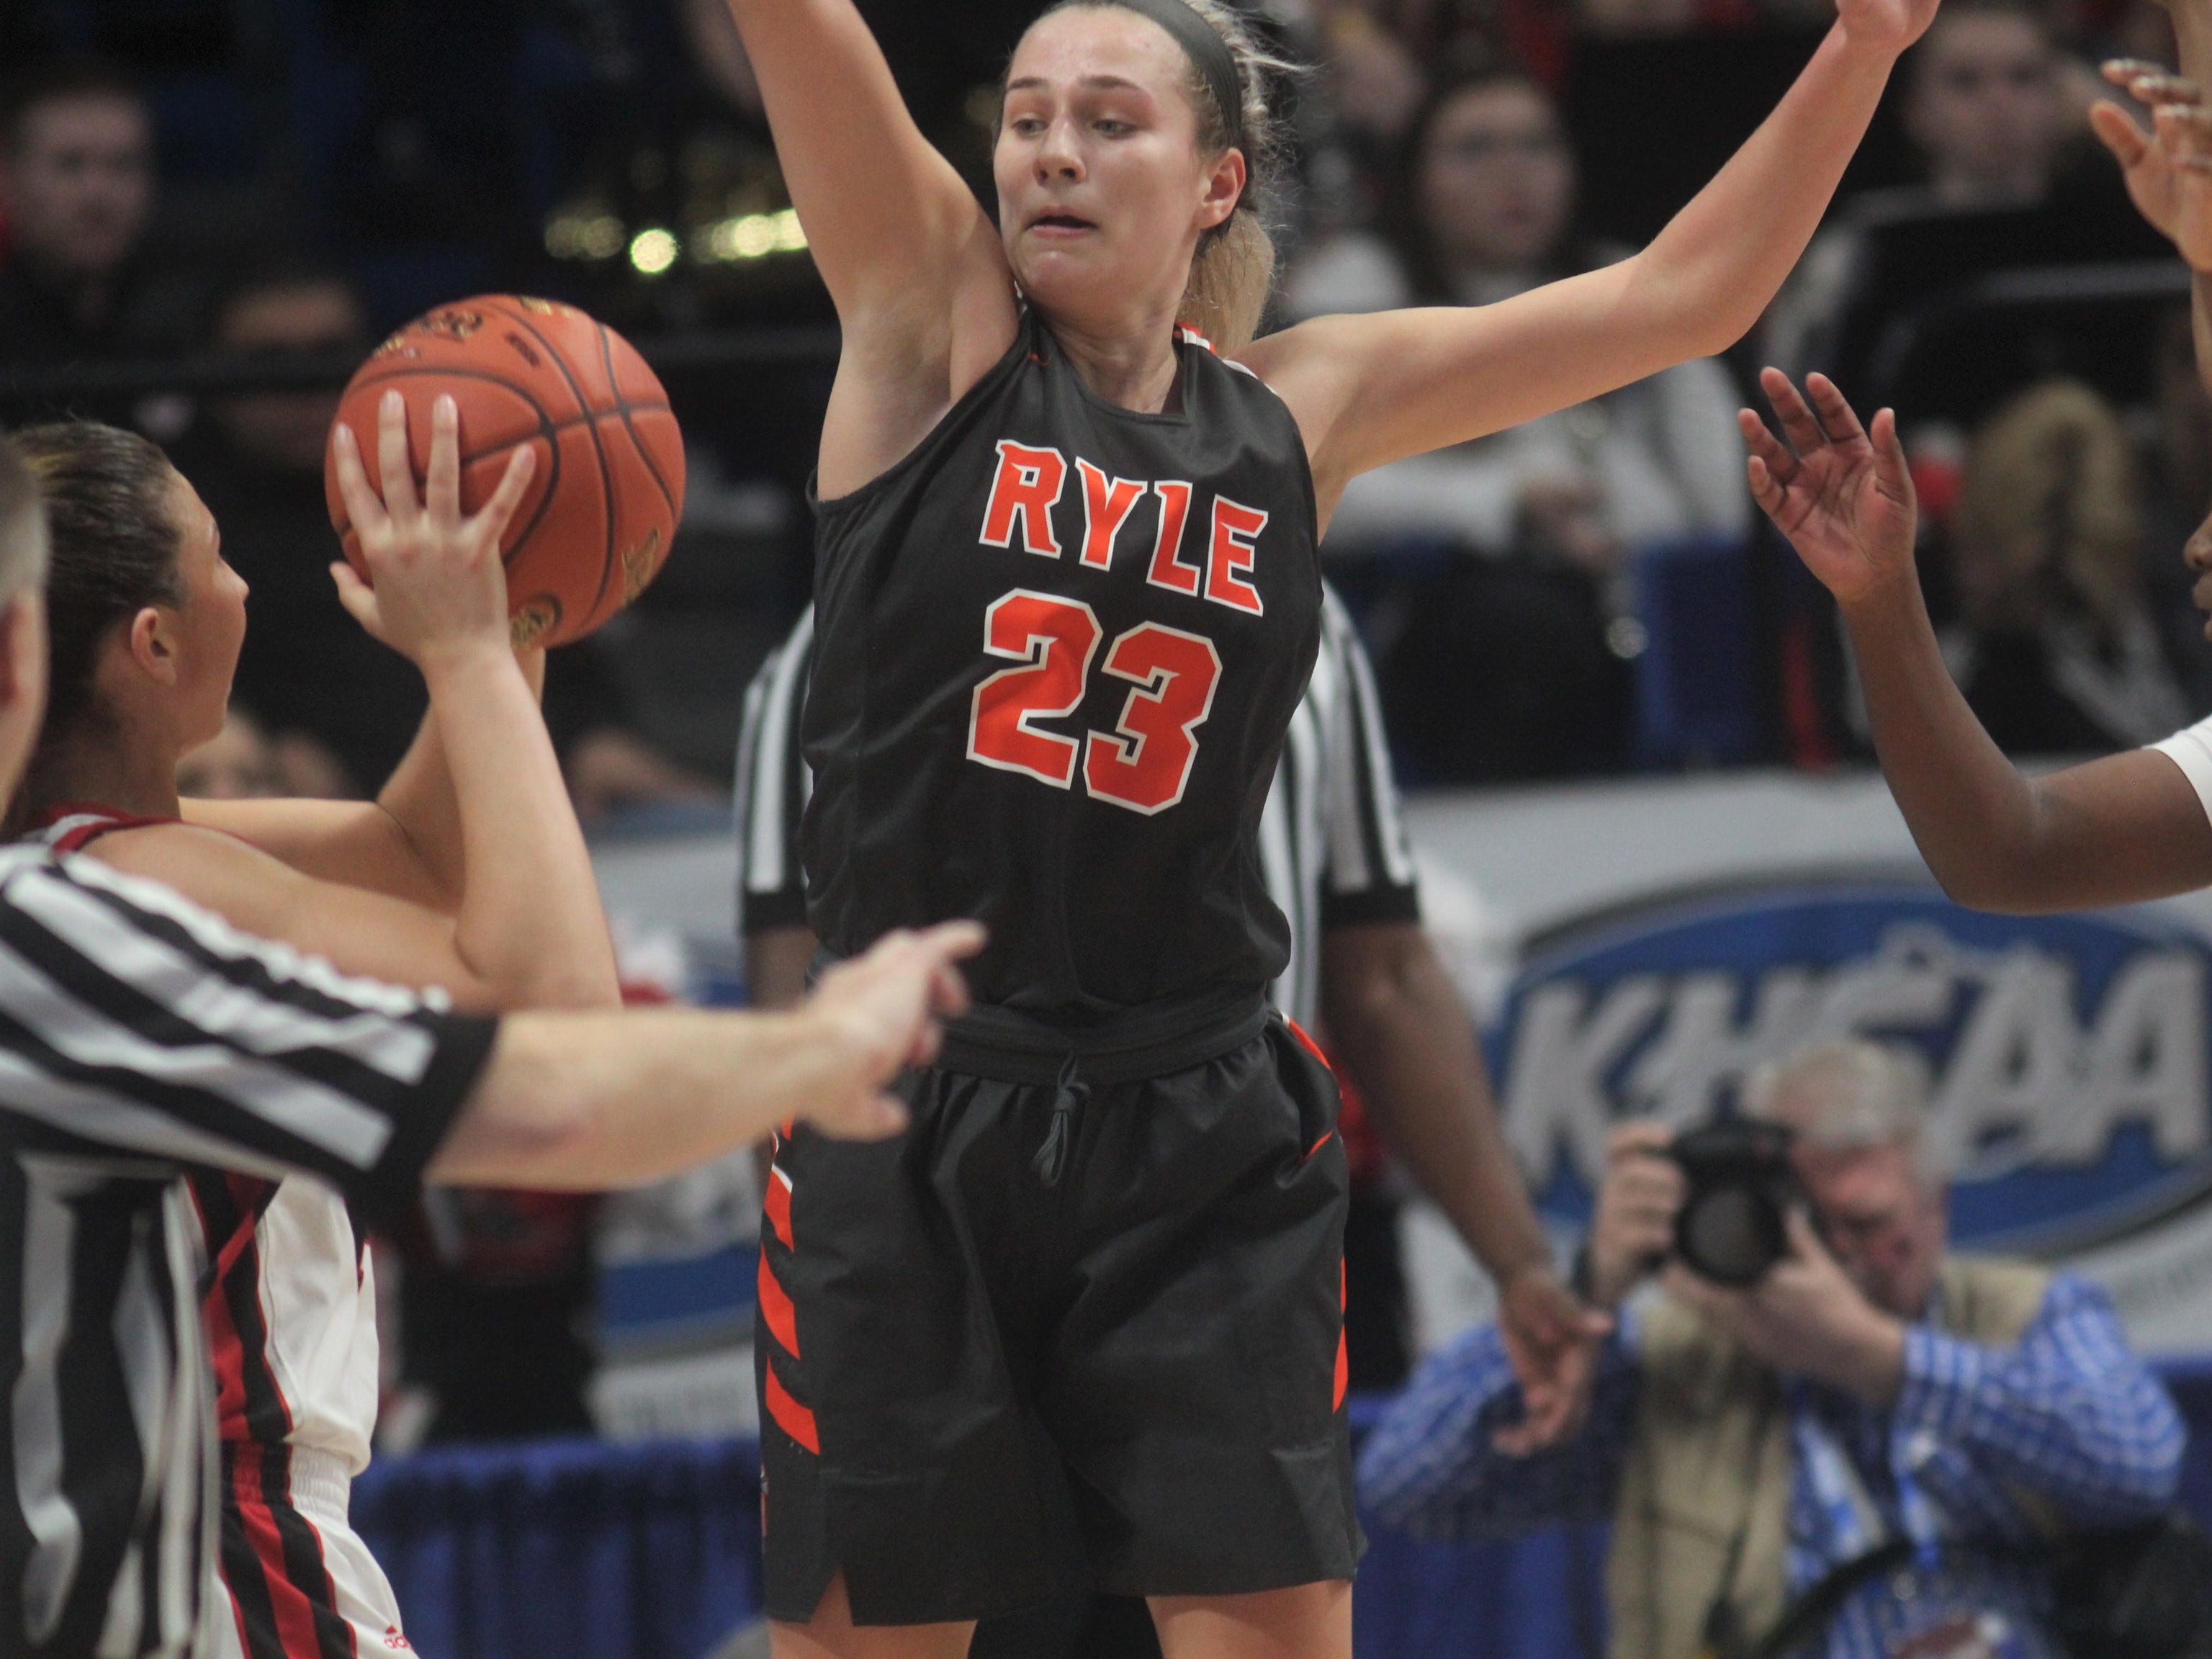 Ryle junior Maddie Scherr pressures the GRC passer as Ryle defeated George Rogers Clark 64-51 in the state quarterfinals of the KHSAA Sweet 16 girls basketball tournament March 15, 2019 at Rupp Arena, Lexington KY.